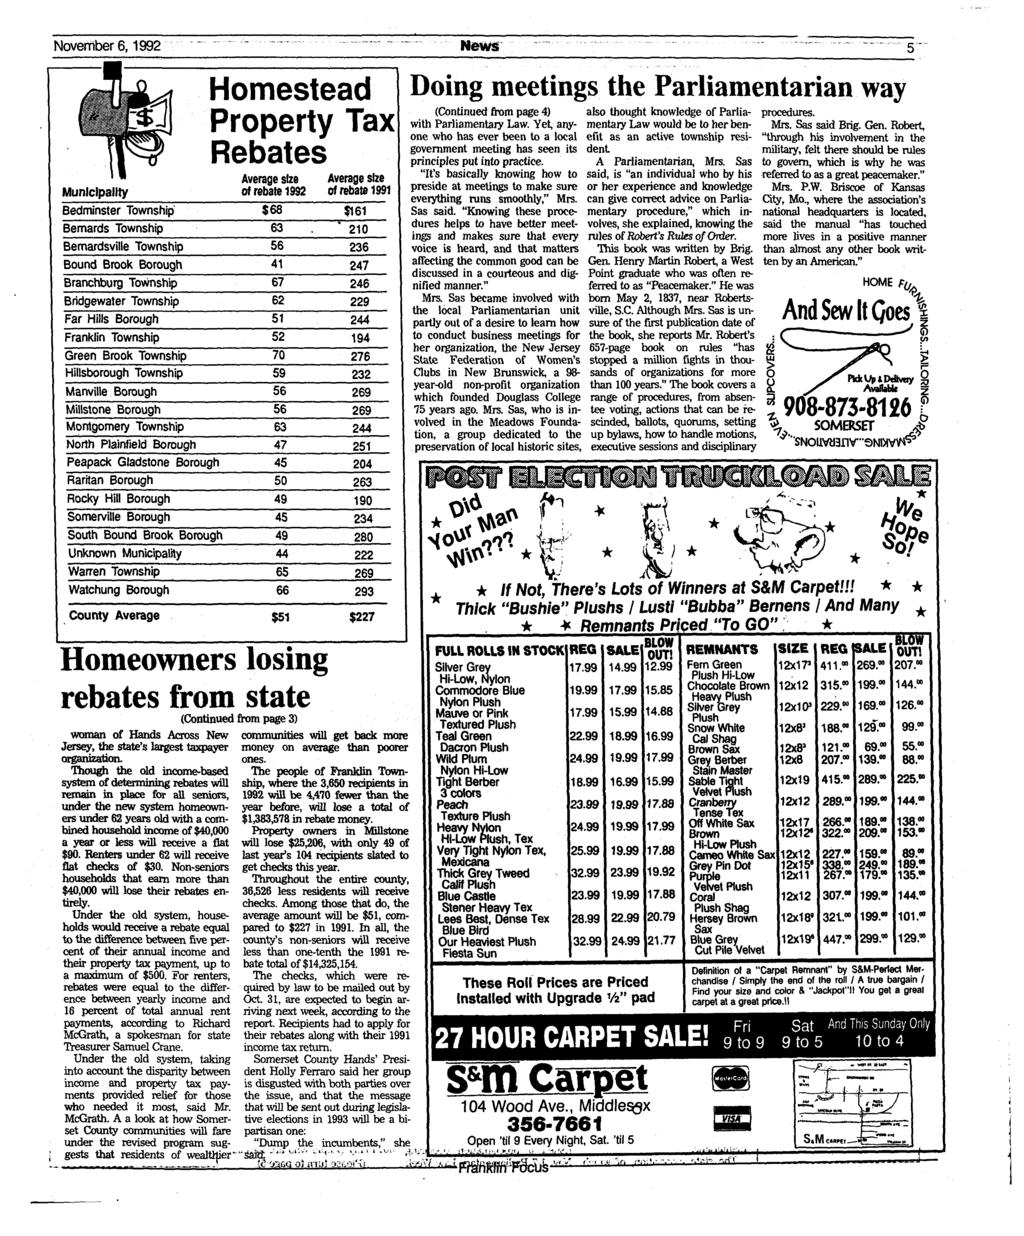 November 6,1992 Municipality Bedminster Township Bernards Township Bemardsville Township Bound Brook Borough Branchburg Township Bridgewater Township Far Hills Borough Franklin Township Green Brook